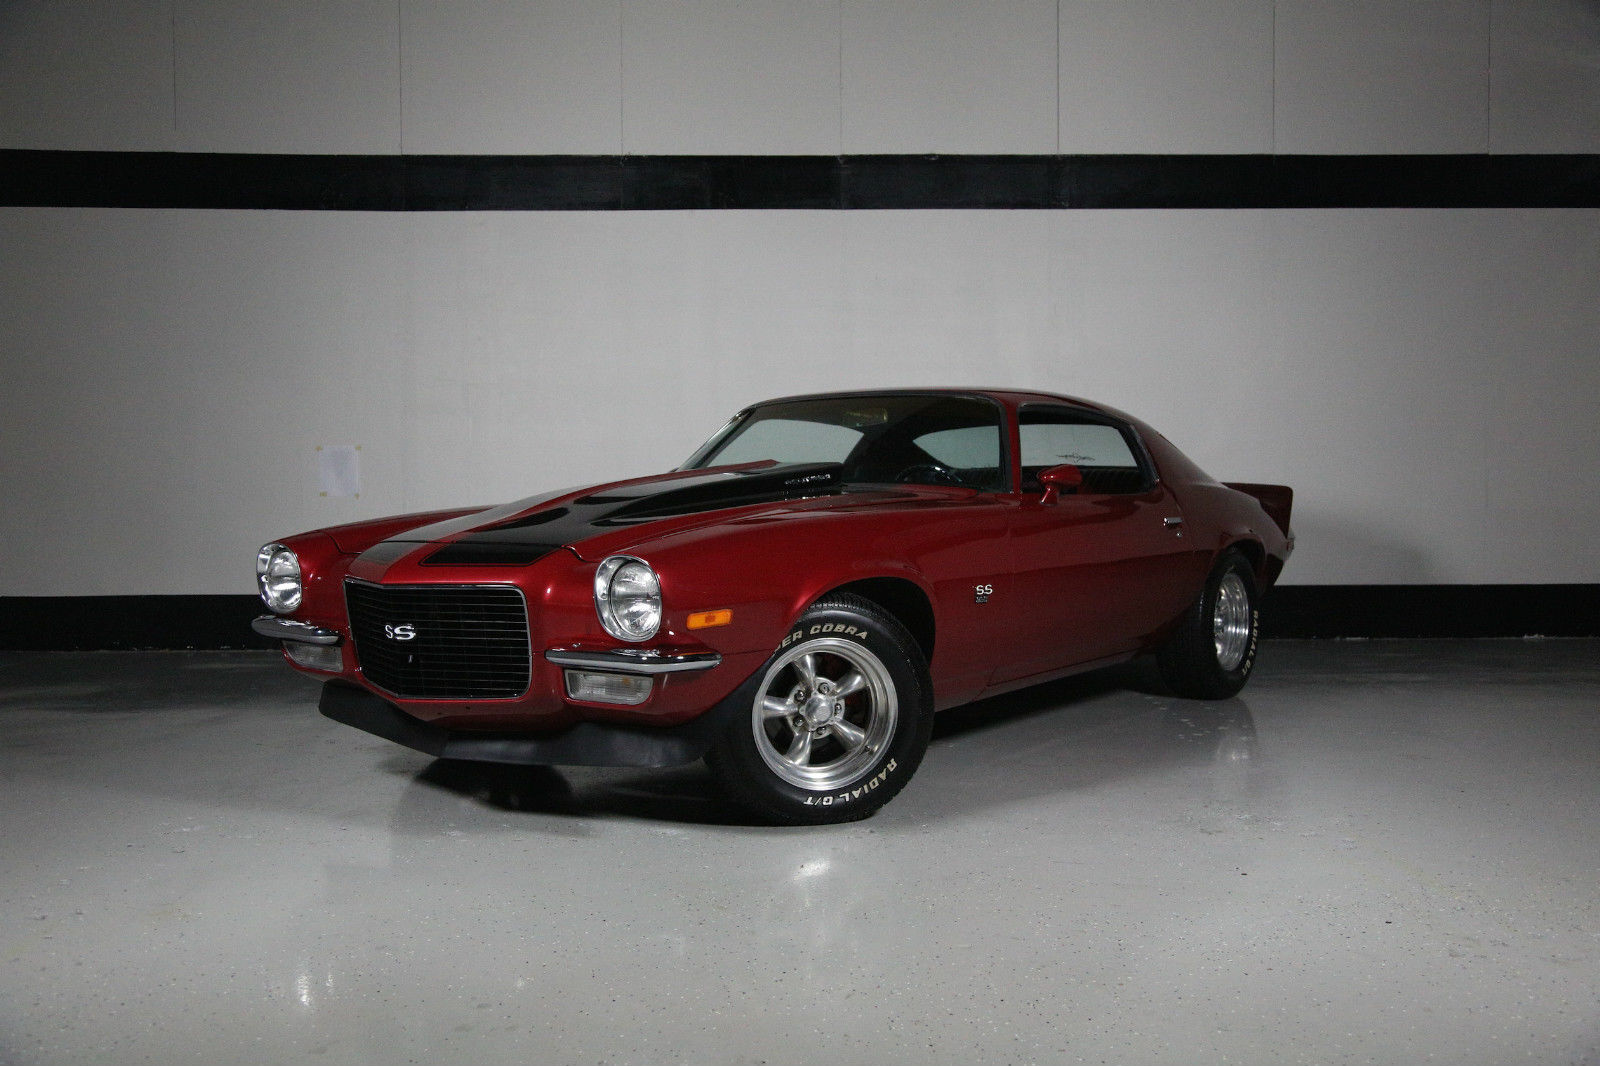 fully restored cranberry red 1970 chevrolet camaro ss. Black Bedroom Furniture Sets. Home Design Ideas